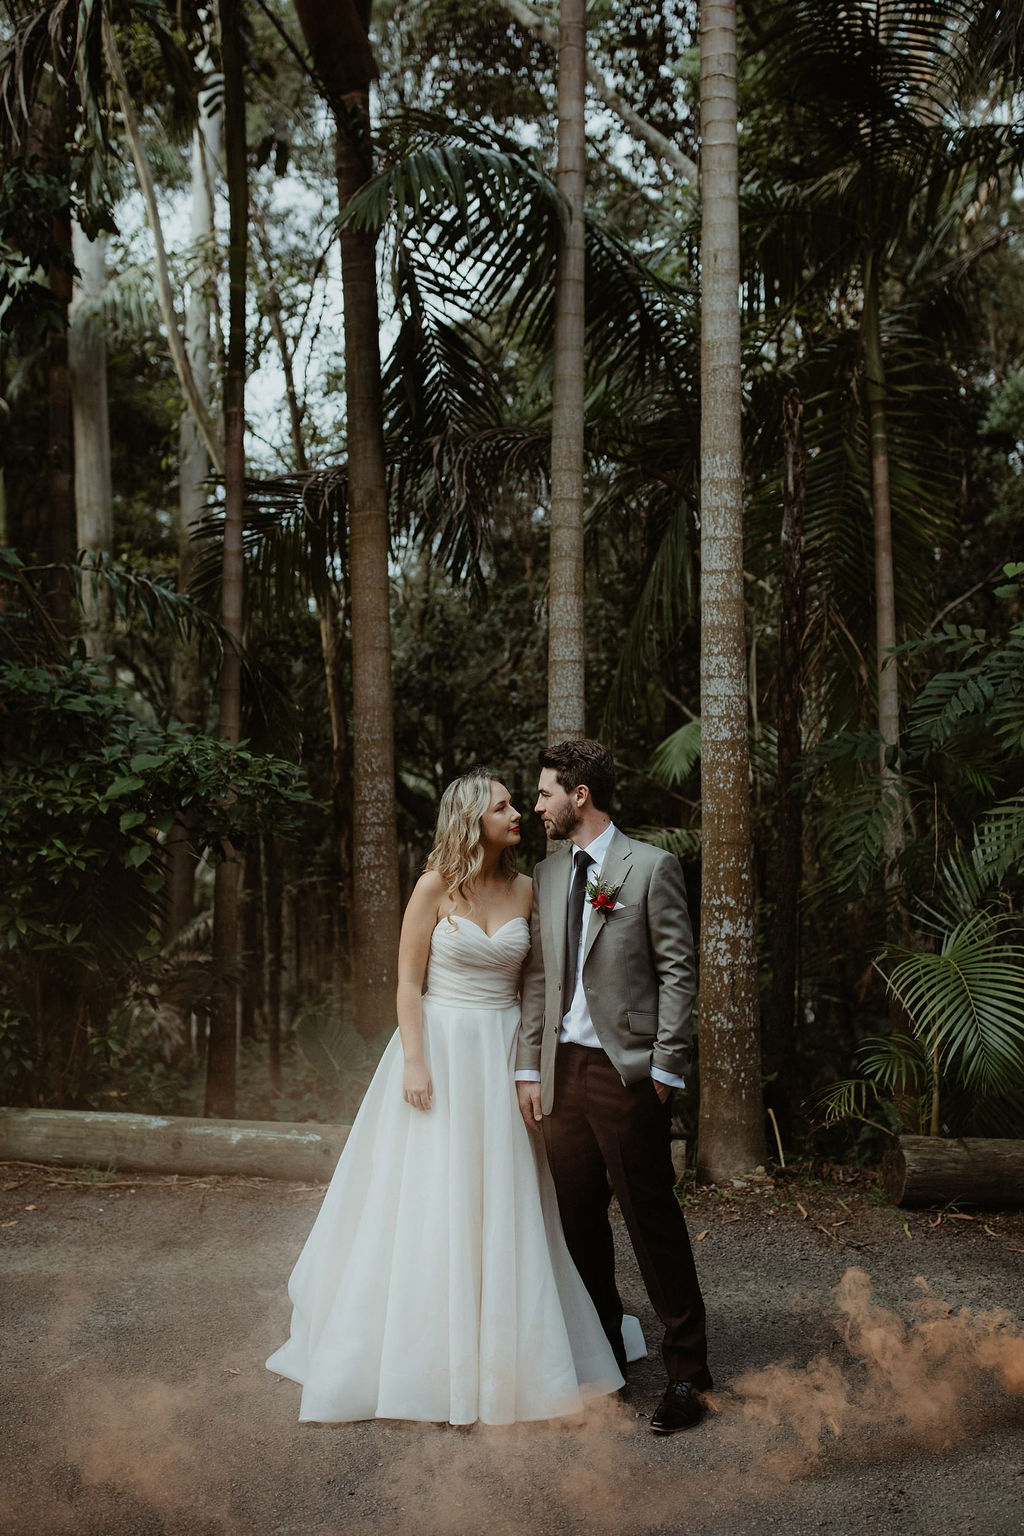 Categories: Weddings-Real Wedding: Alysia & Simon - Photography by Corinna & Dylan